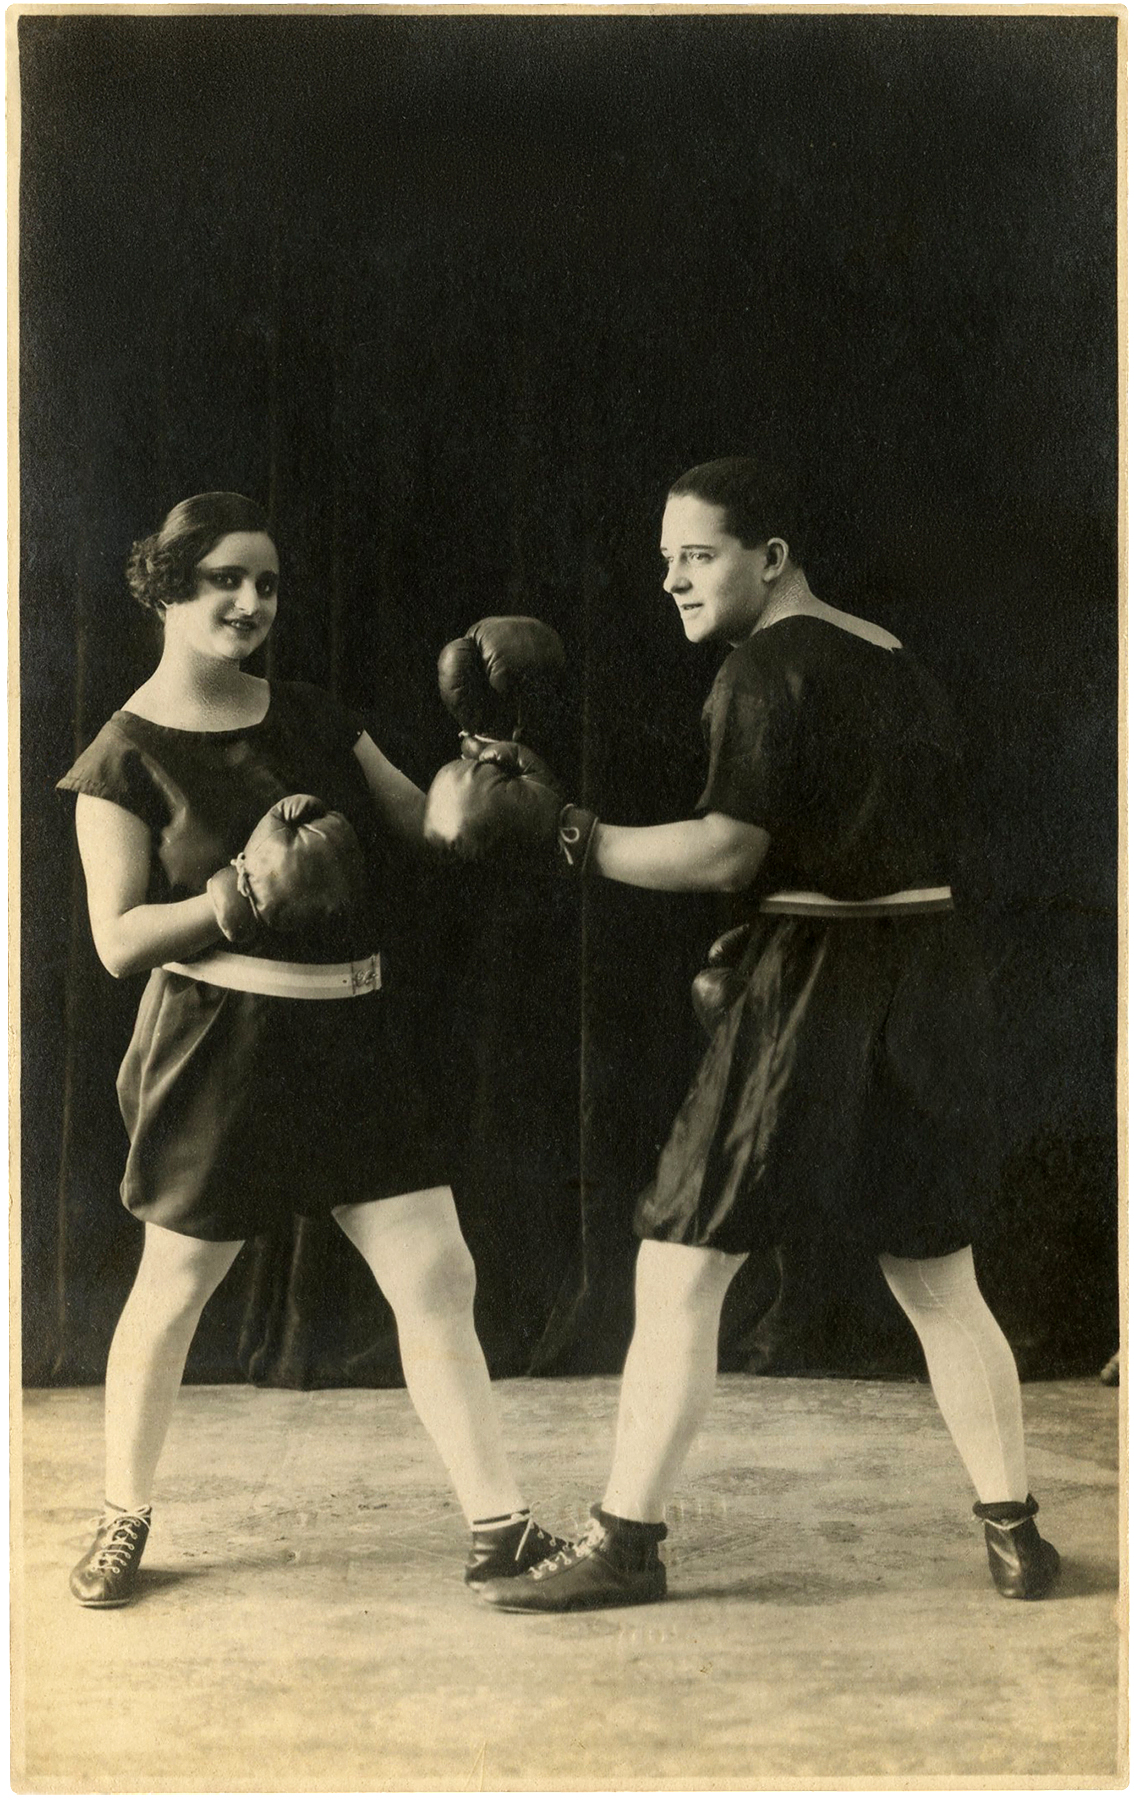 Vintage-Man-Woman-Boxing-Photo-GraphicsFairy